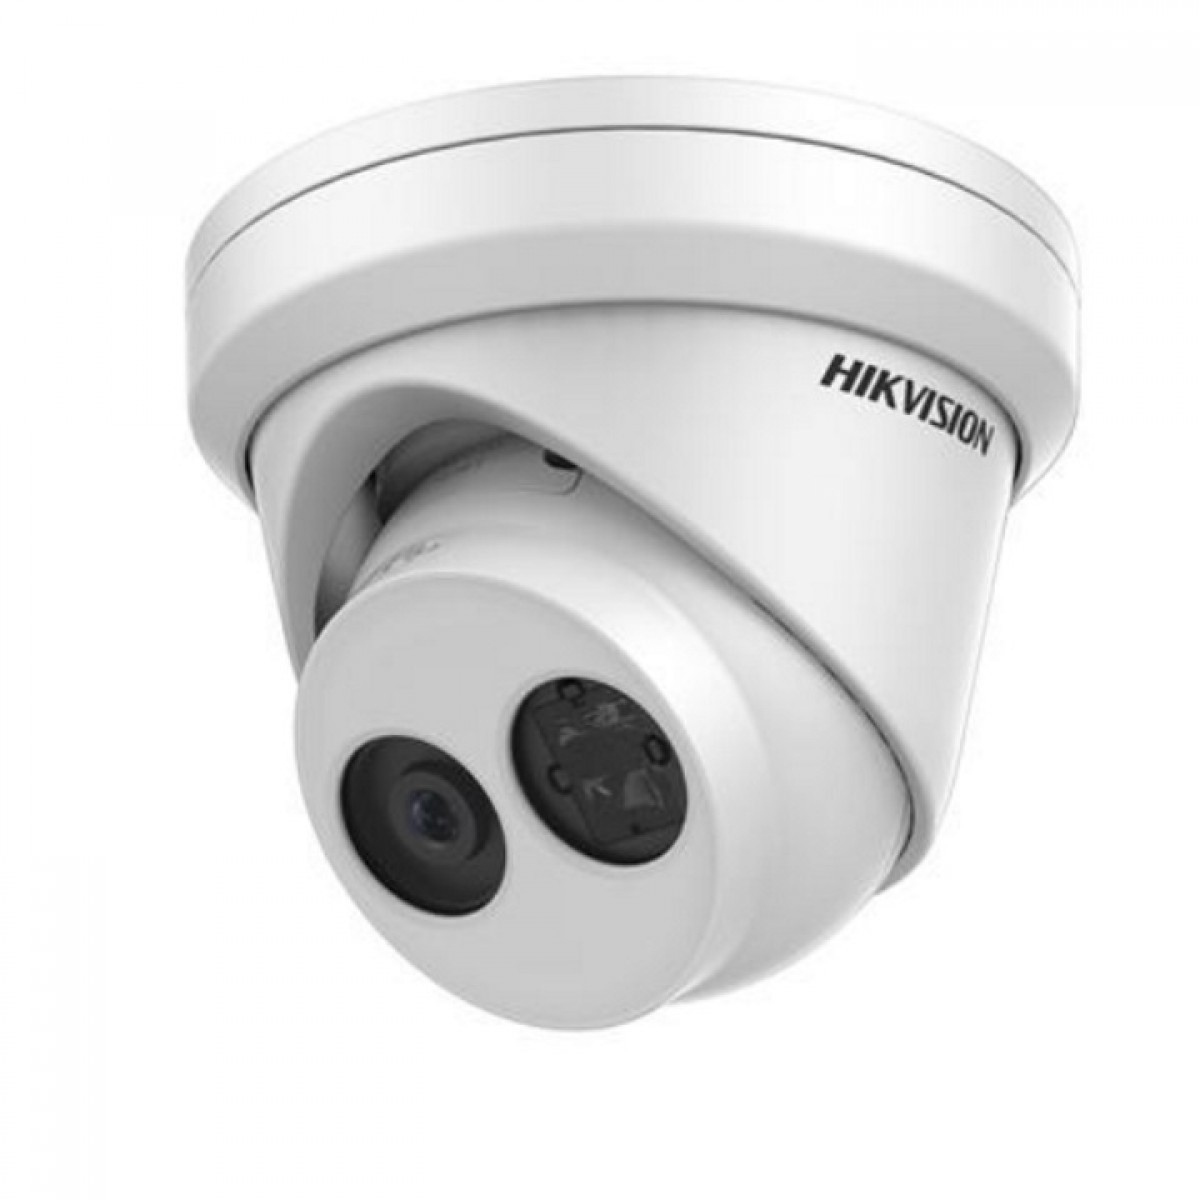 Hikvision DS-2CD2363G0-I 6MP H.265 SD-Card 30M IR POE Turret Dome IP Network Security CCTV Camera 2.8MM 4MM 6MM 8MM